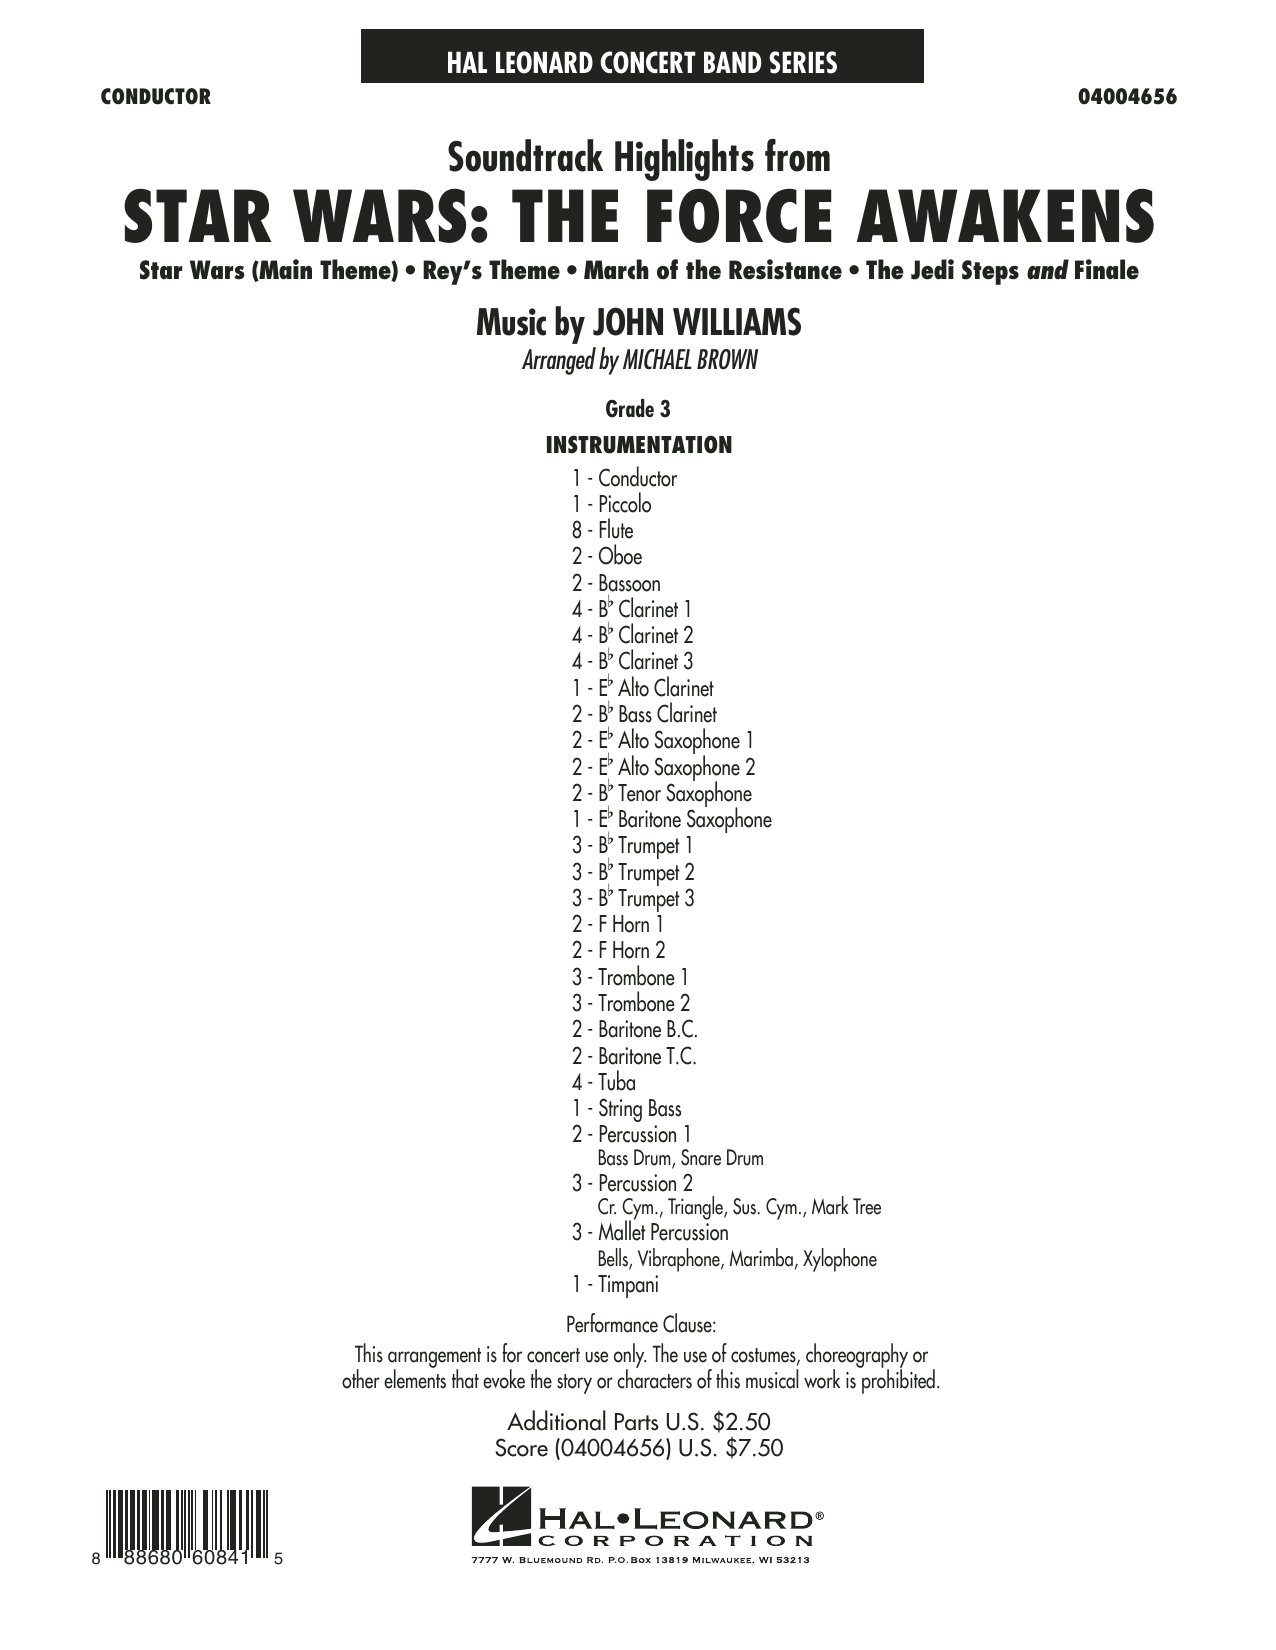 Soundtrack Highlights from Star Wars: The Force Awakens - Conductor Score (Full Score) (Concert Band)